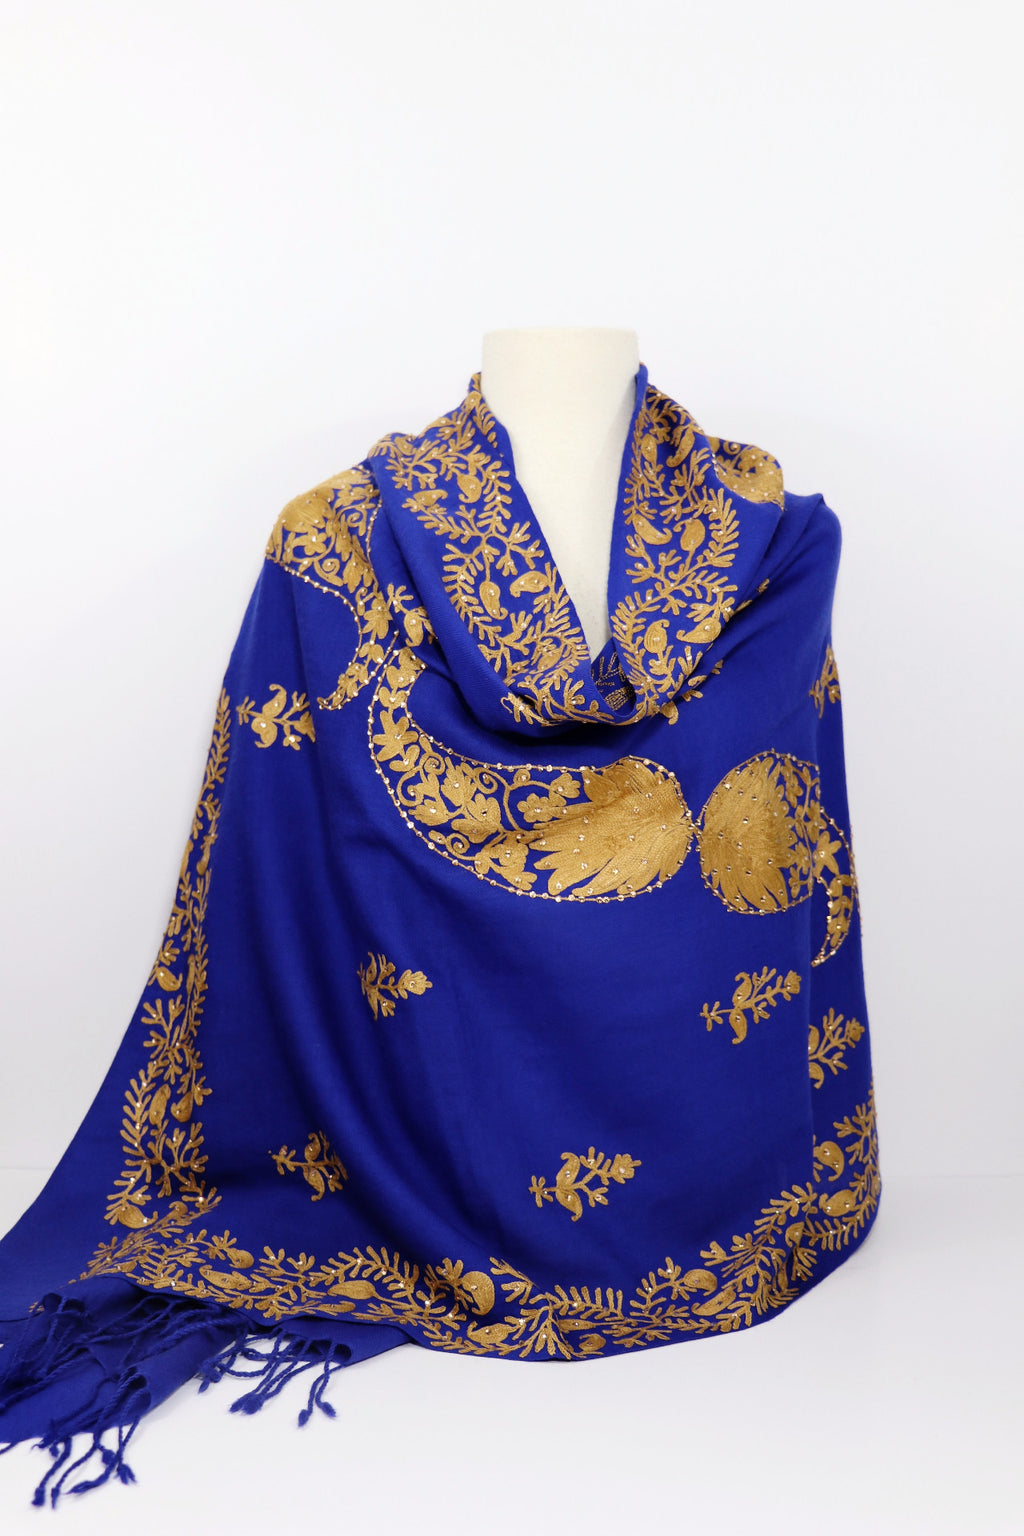 Embroidered Shawls with Wide Border